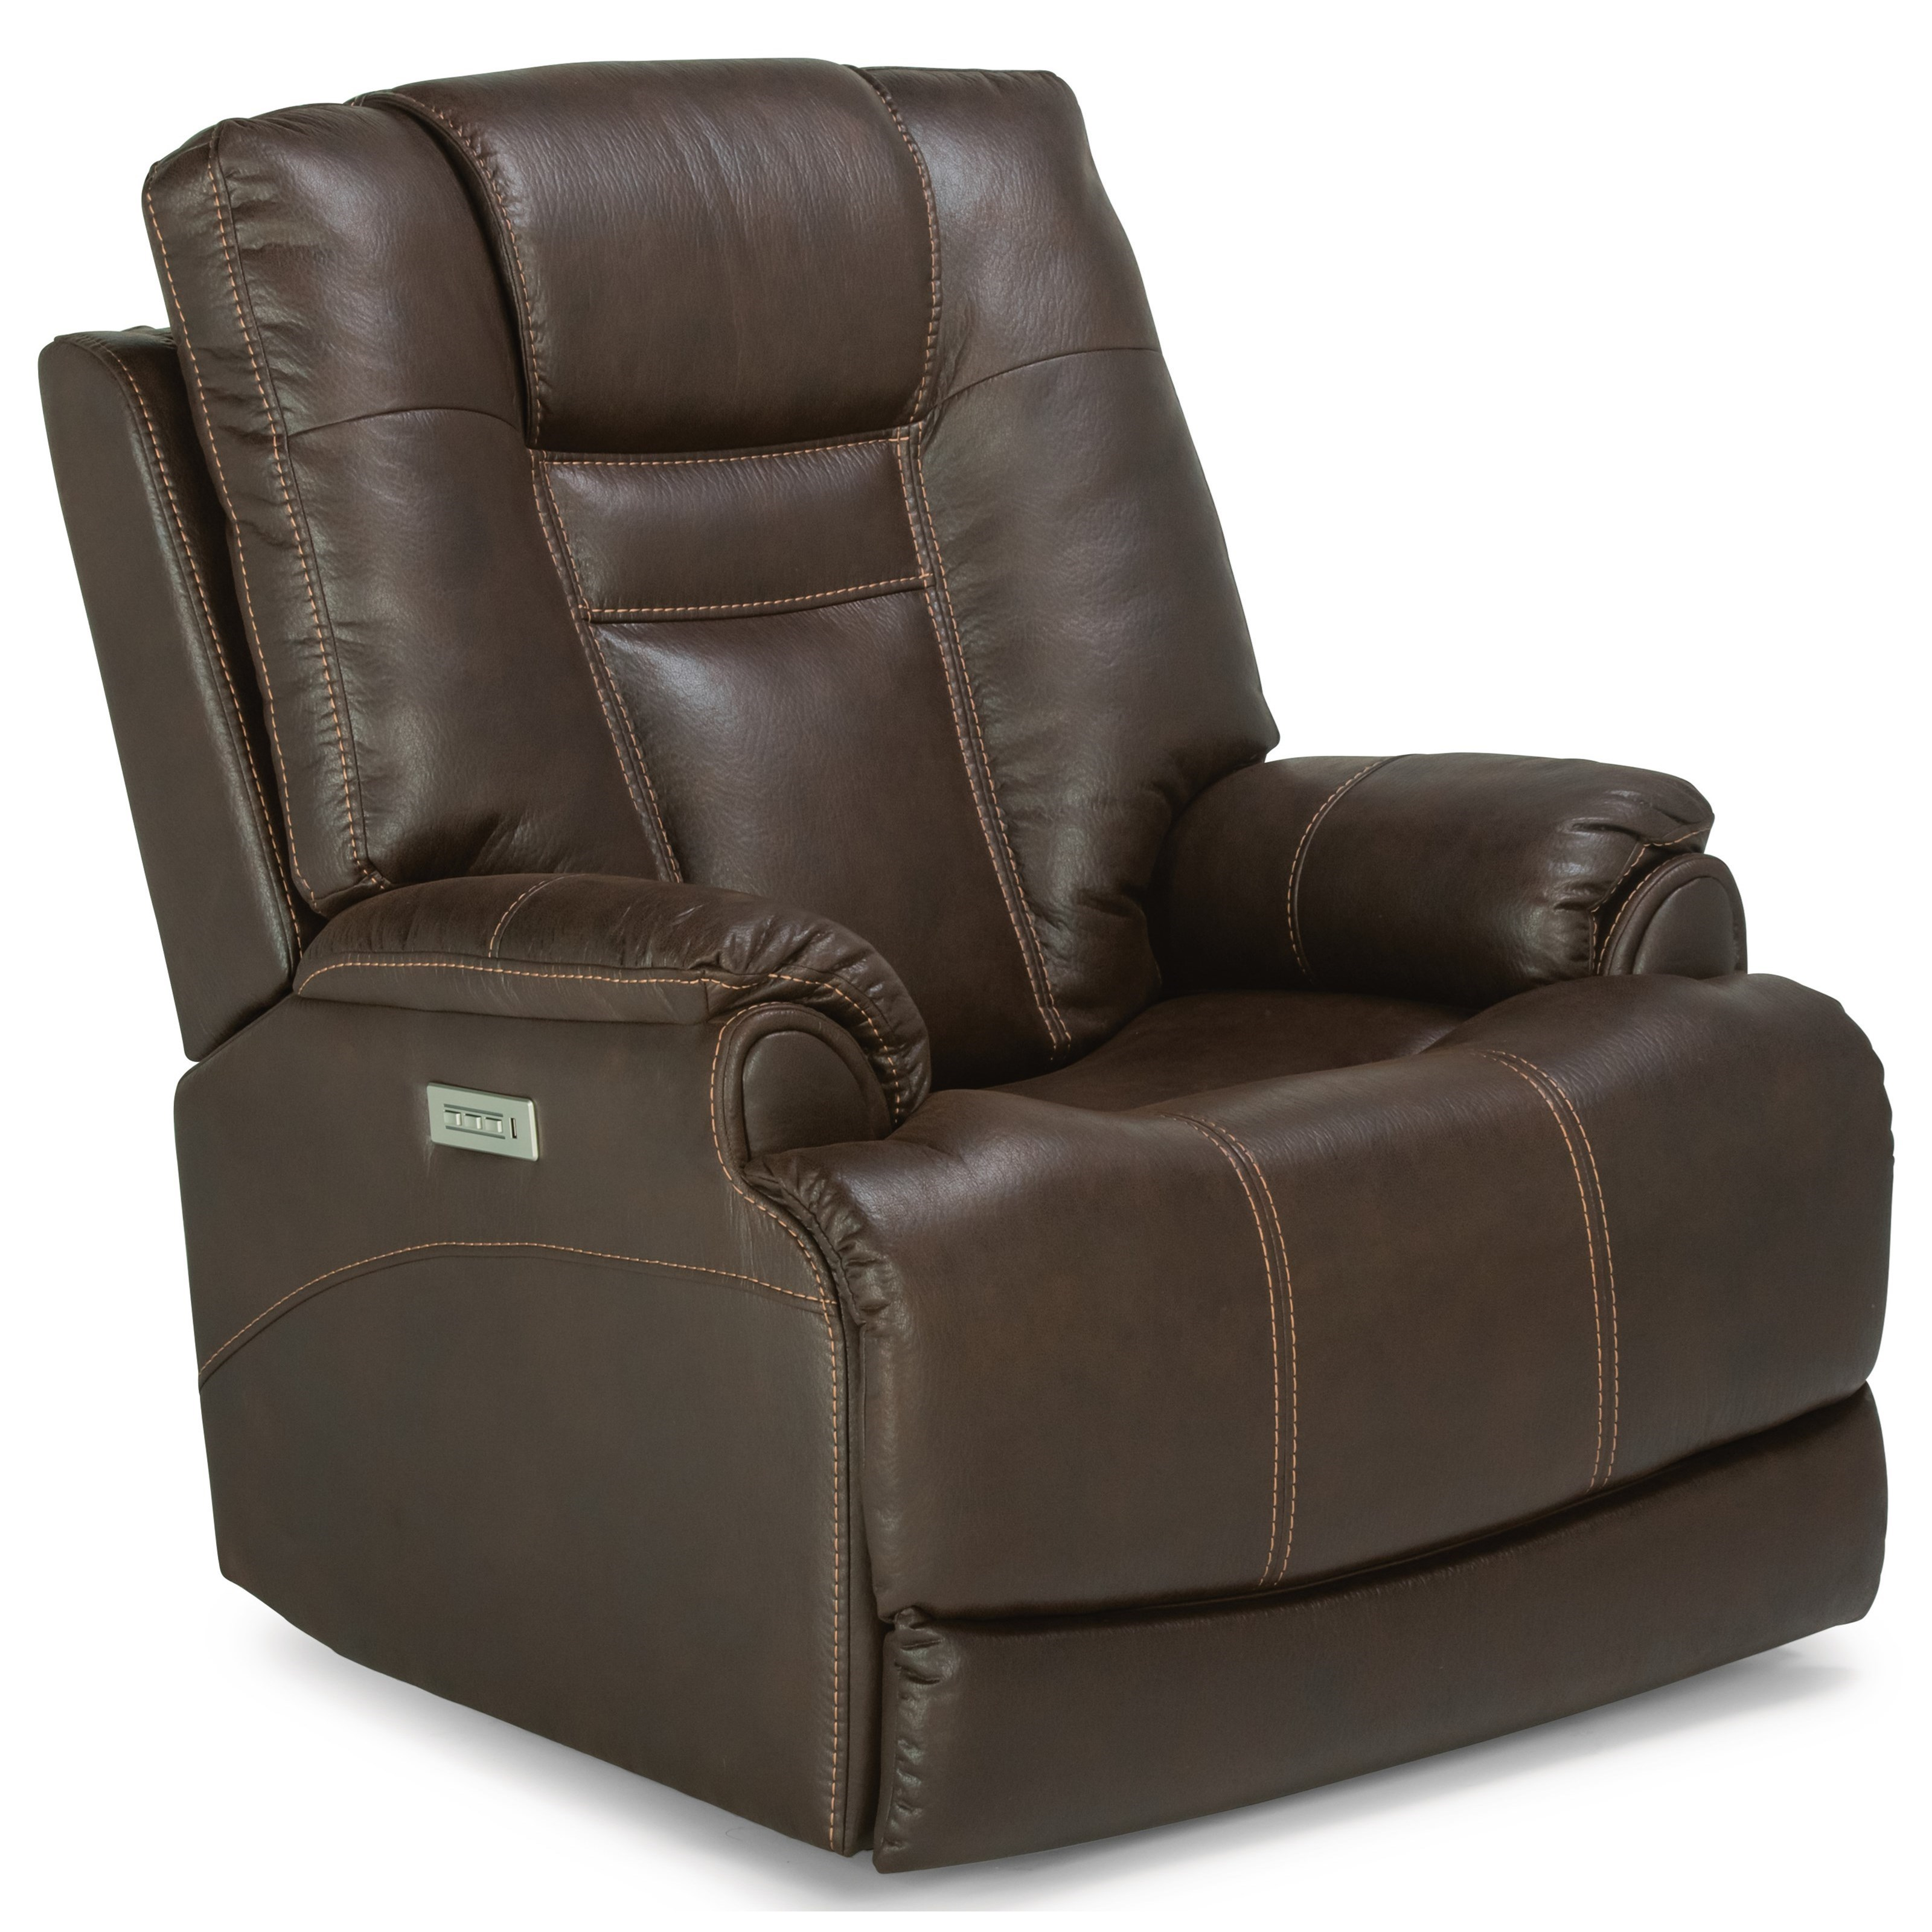 Marley Power Recliner with Power Headrest by Flexsteel at Rooms for Less